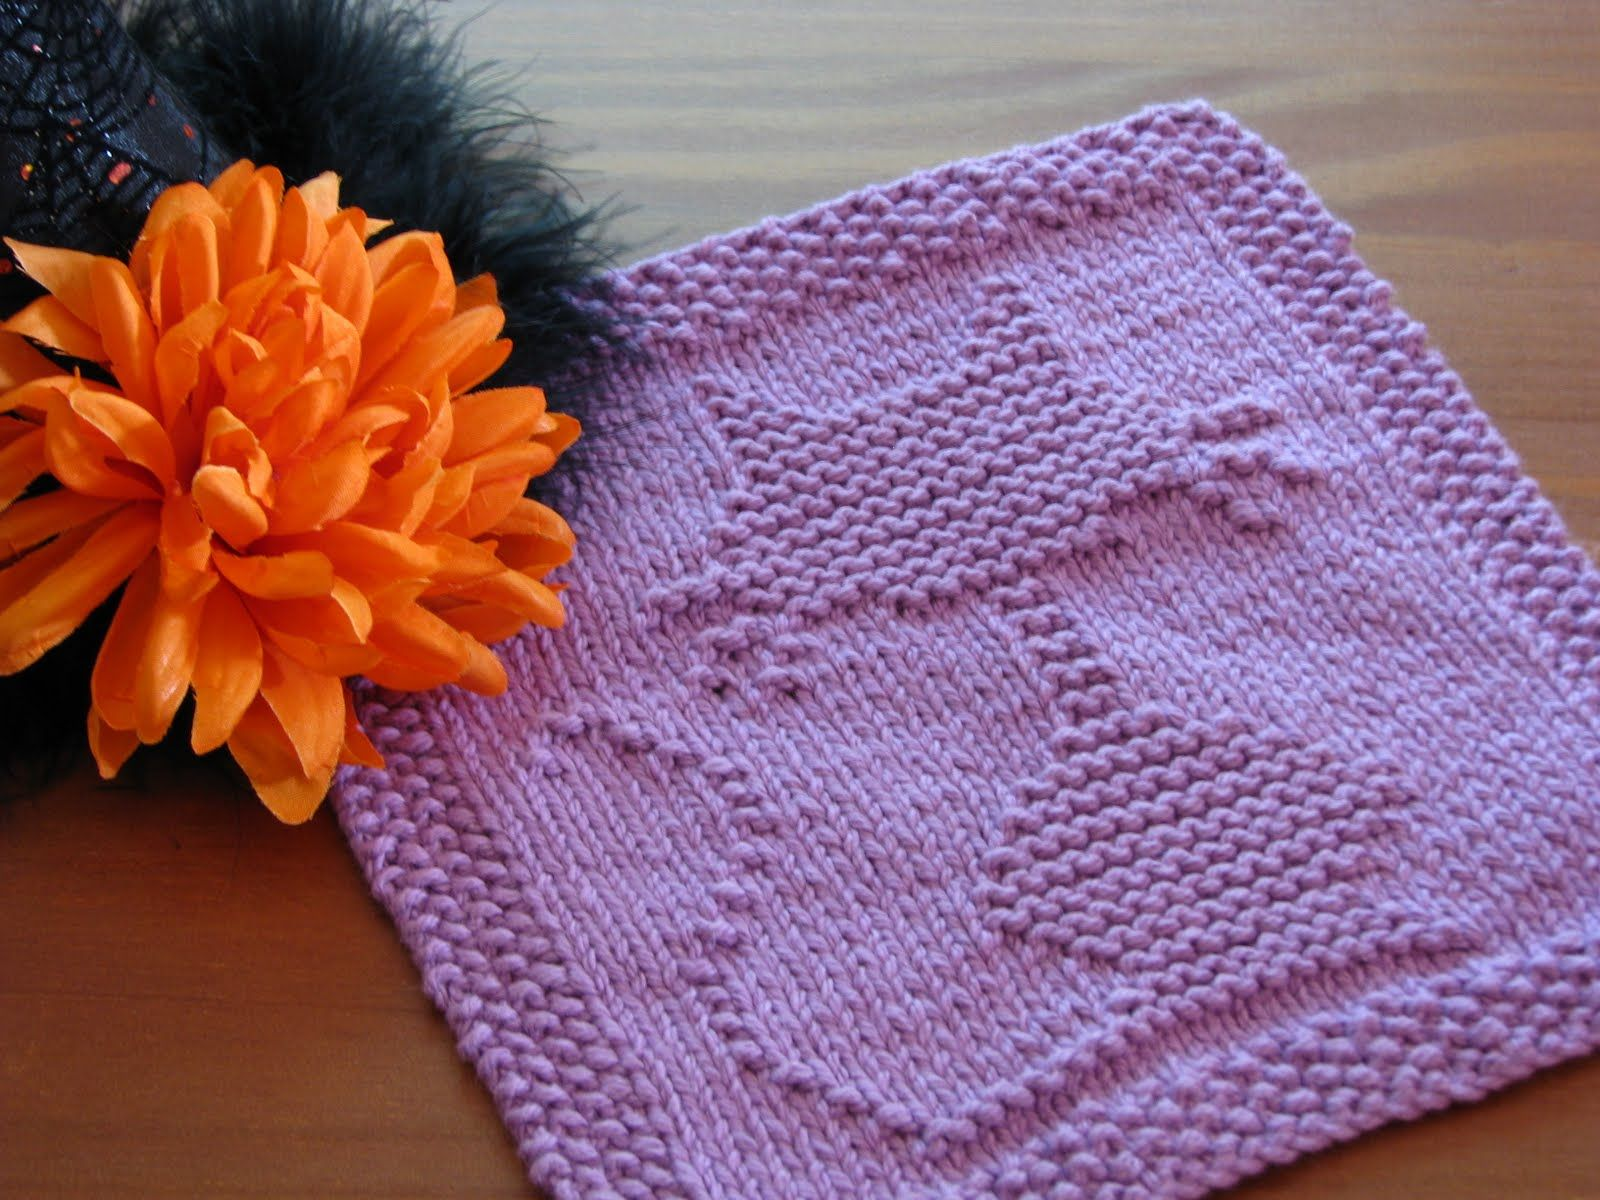 This not so scary halloween cat is a hit at our house this free pattern one crafty mama halloween cat dishcloth or anytime dish cloth bankloansurffo Choice Image